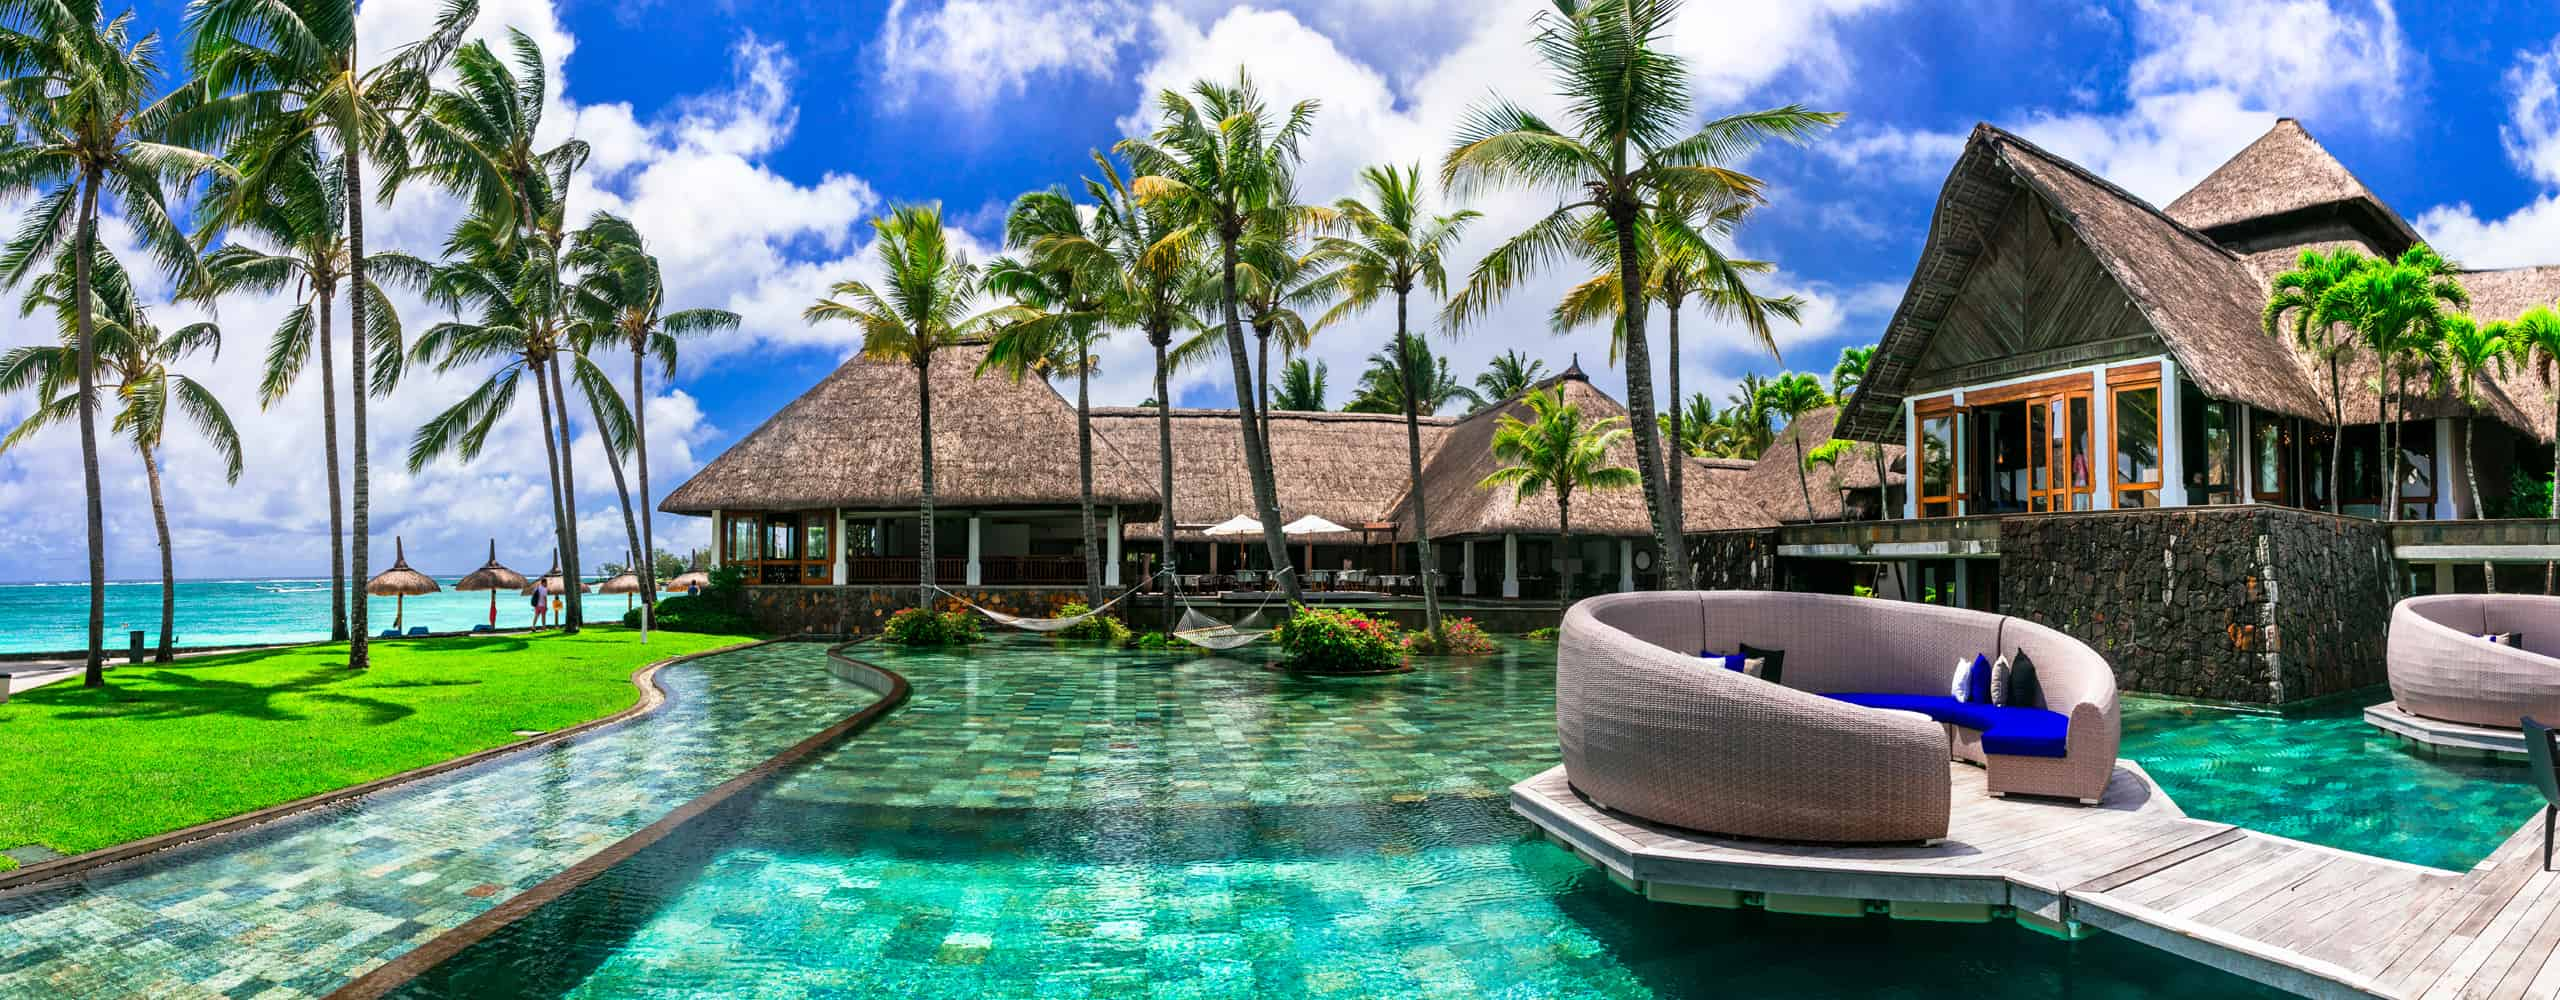 Constance Belle Mare Plage, Mauritius